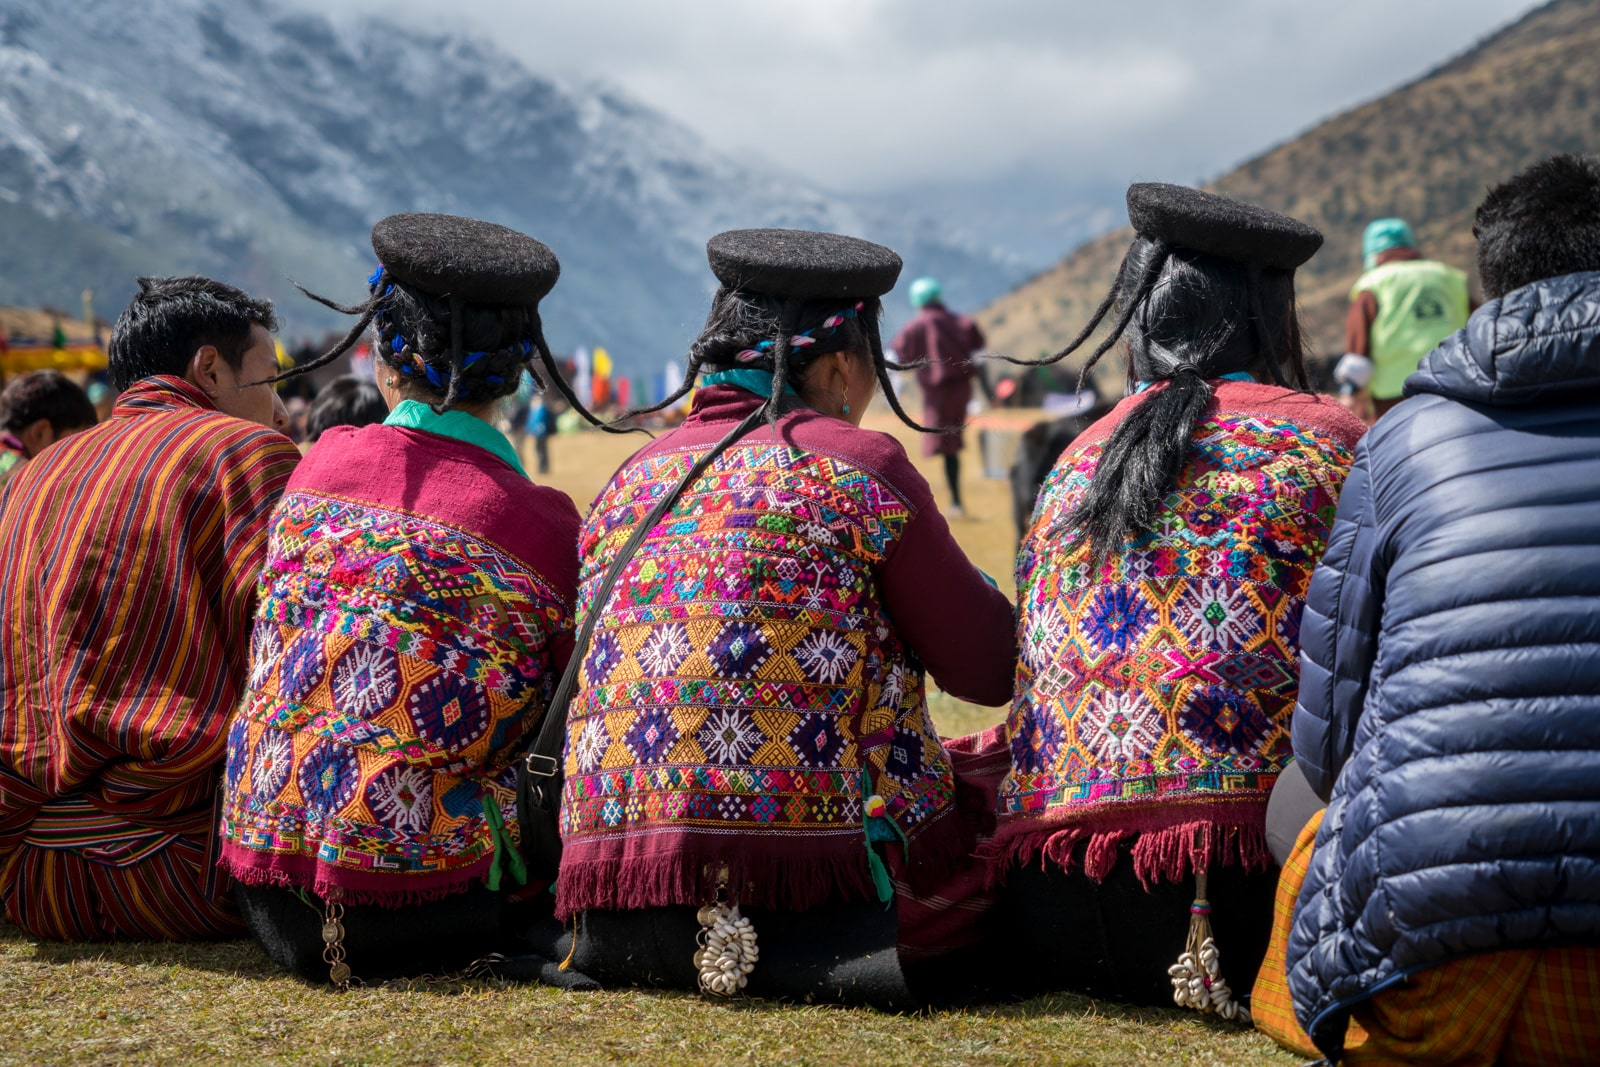 Photos of the Royal Highlander Festival in Bhutan - Monpa yak hair hats and embroidered vests - Lost With Purpose travel blog